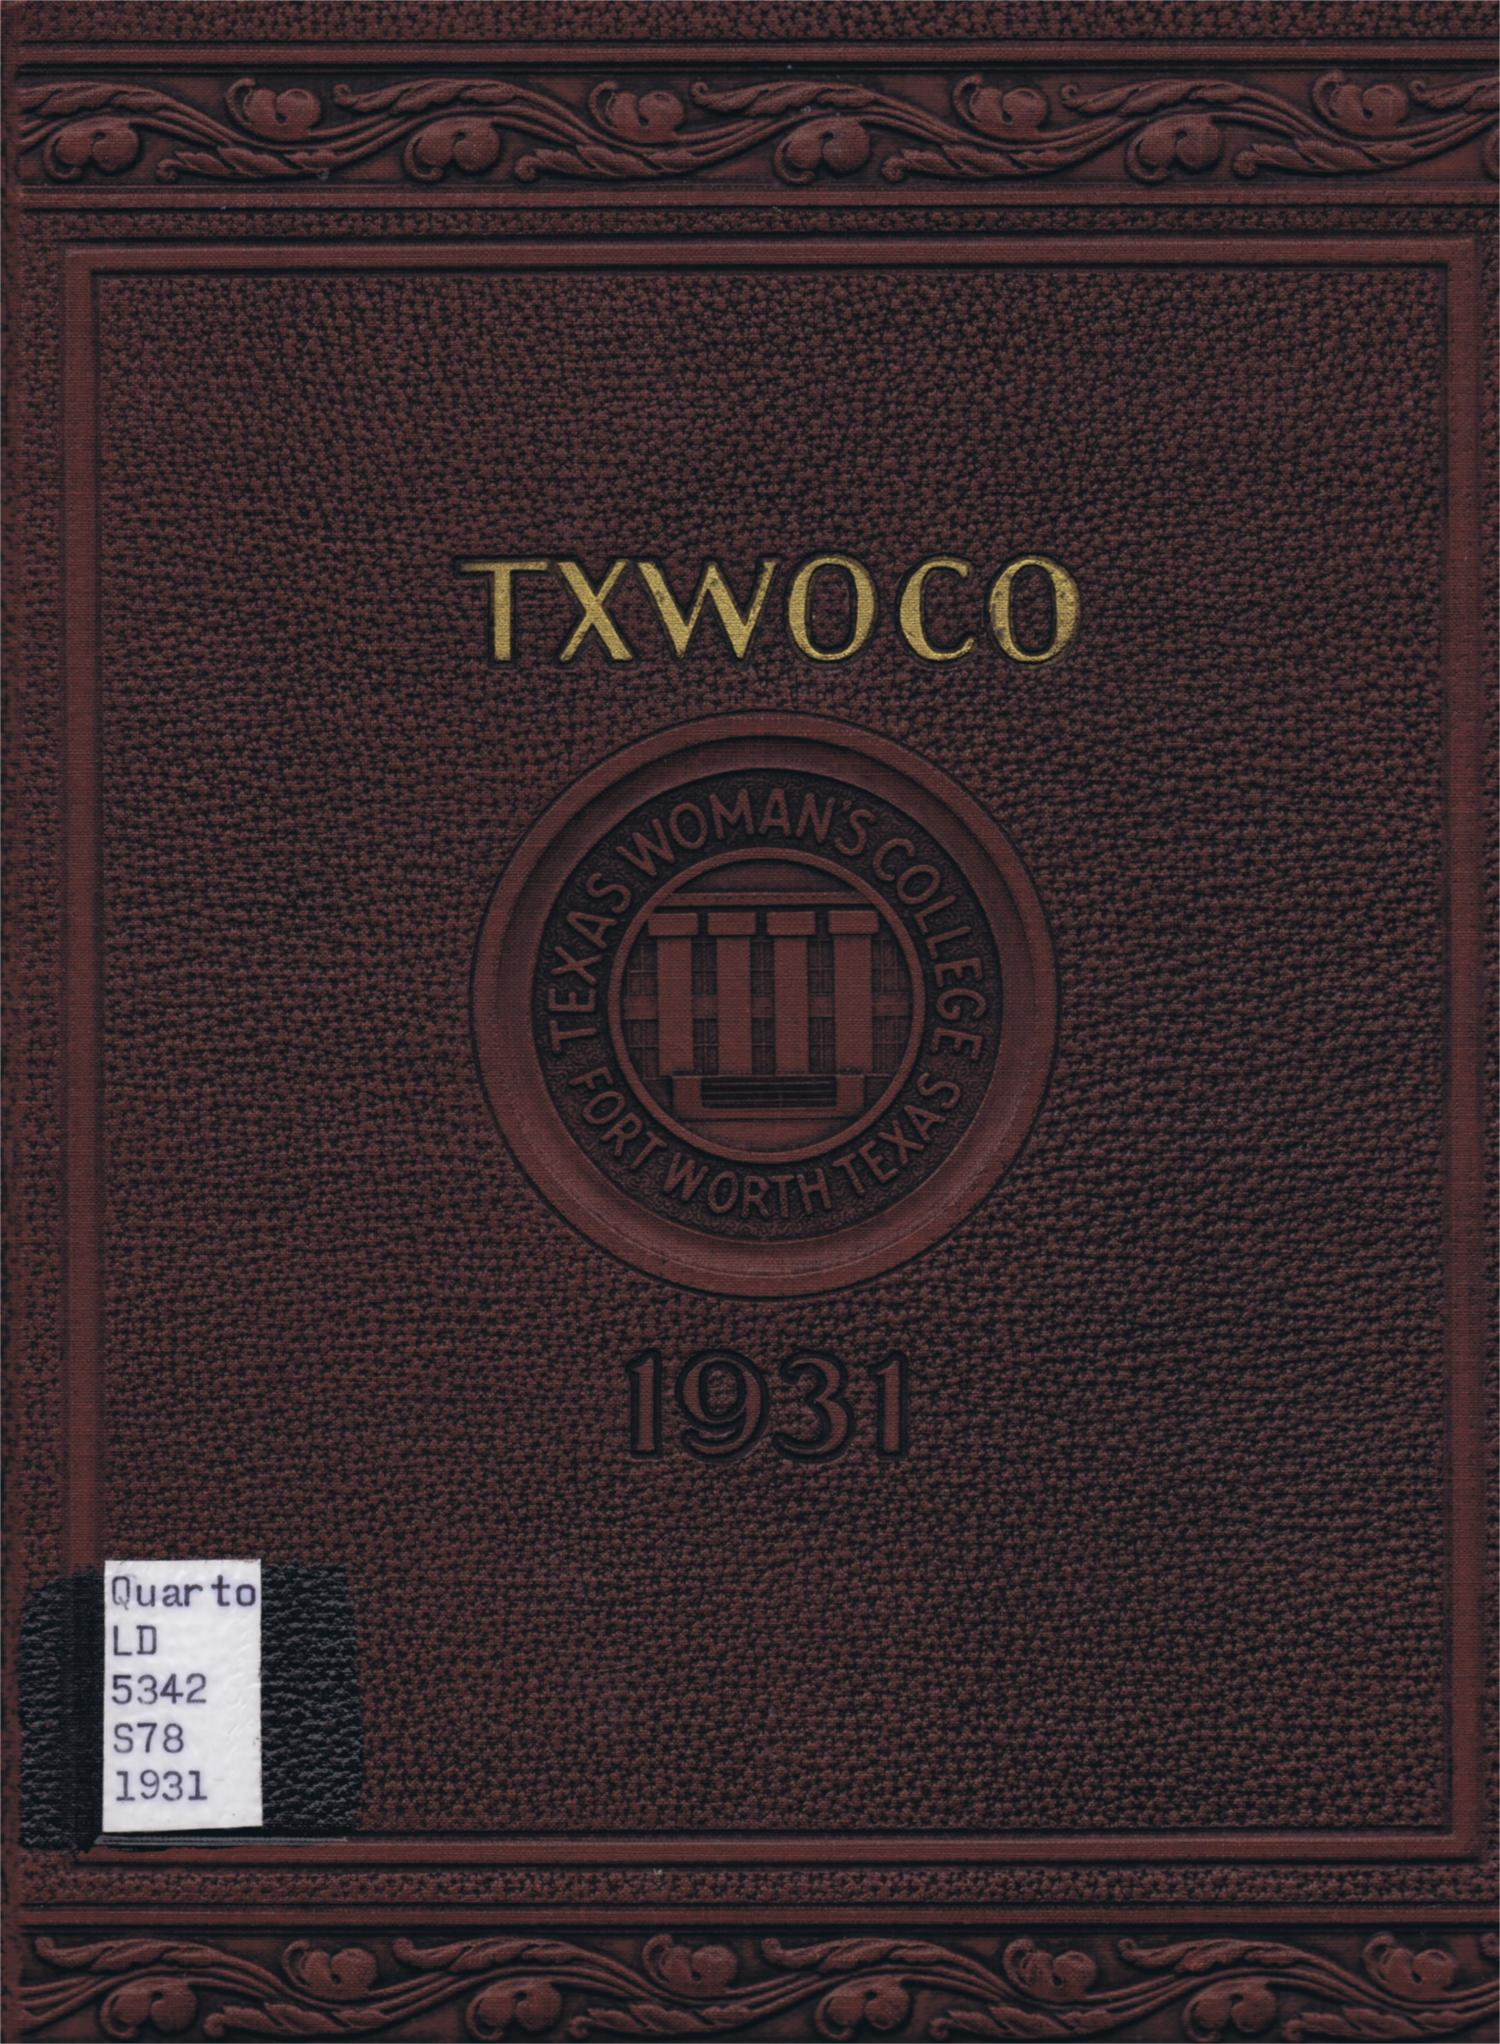 TXWOCO, Yearbook of Texas Woman's College, 1931                                                                                                      Front Cover